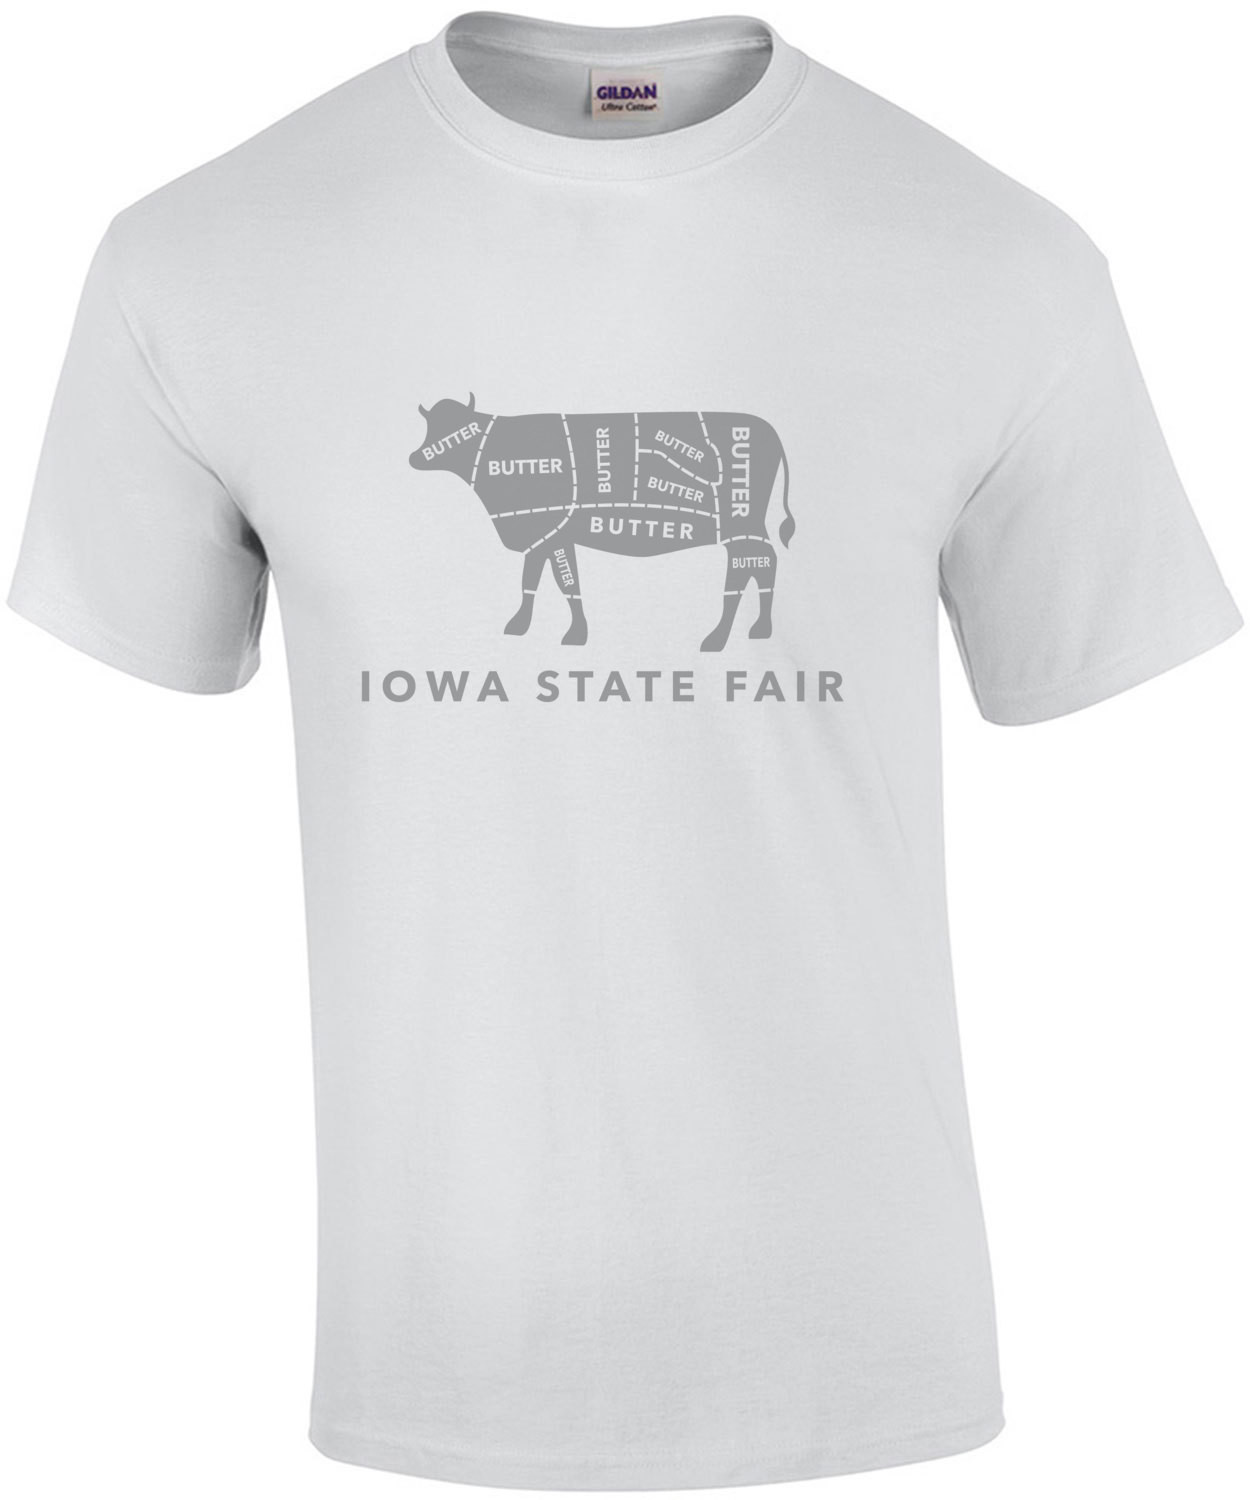 Iowa State Fair - Butter Cow - Iowa T-Shirt